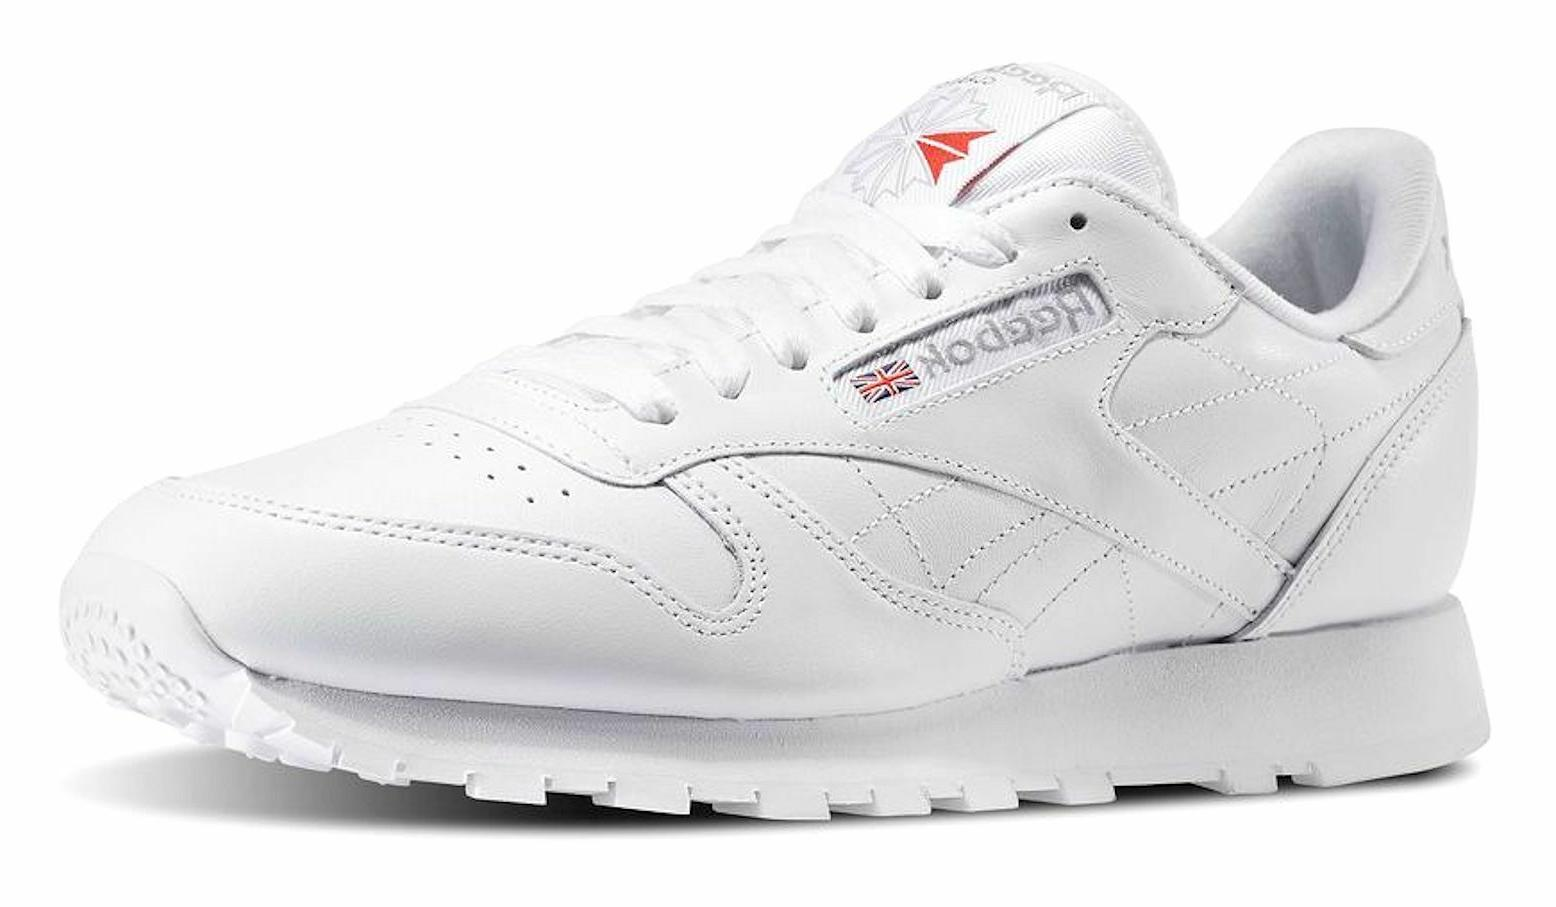 Reebok Classic Leather White, Light Grey Mens Running Tennis